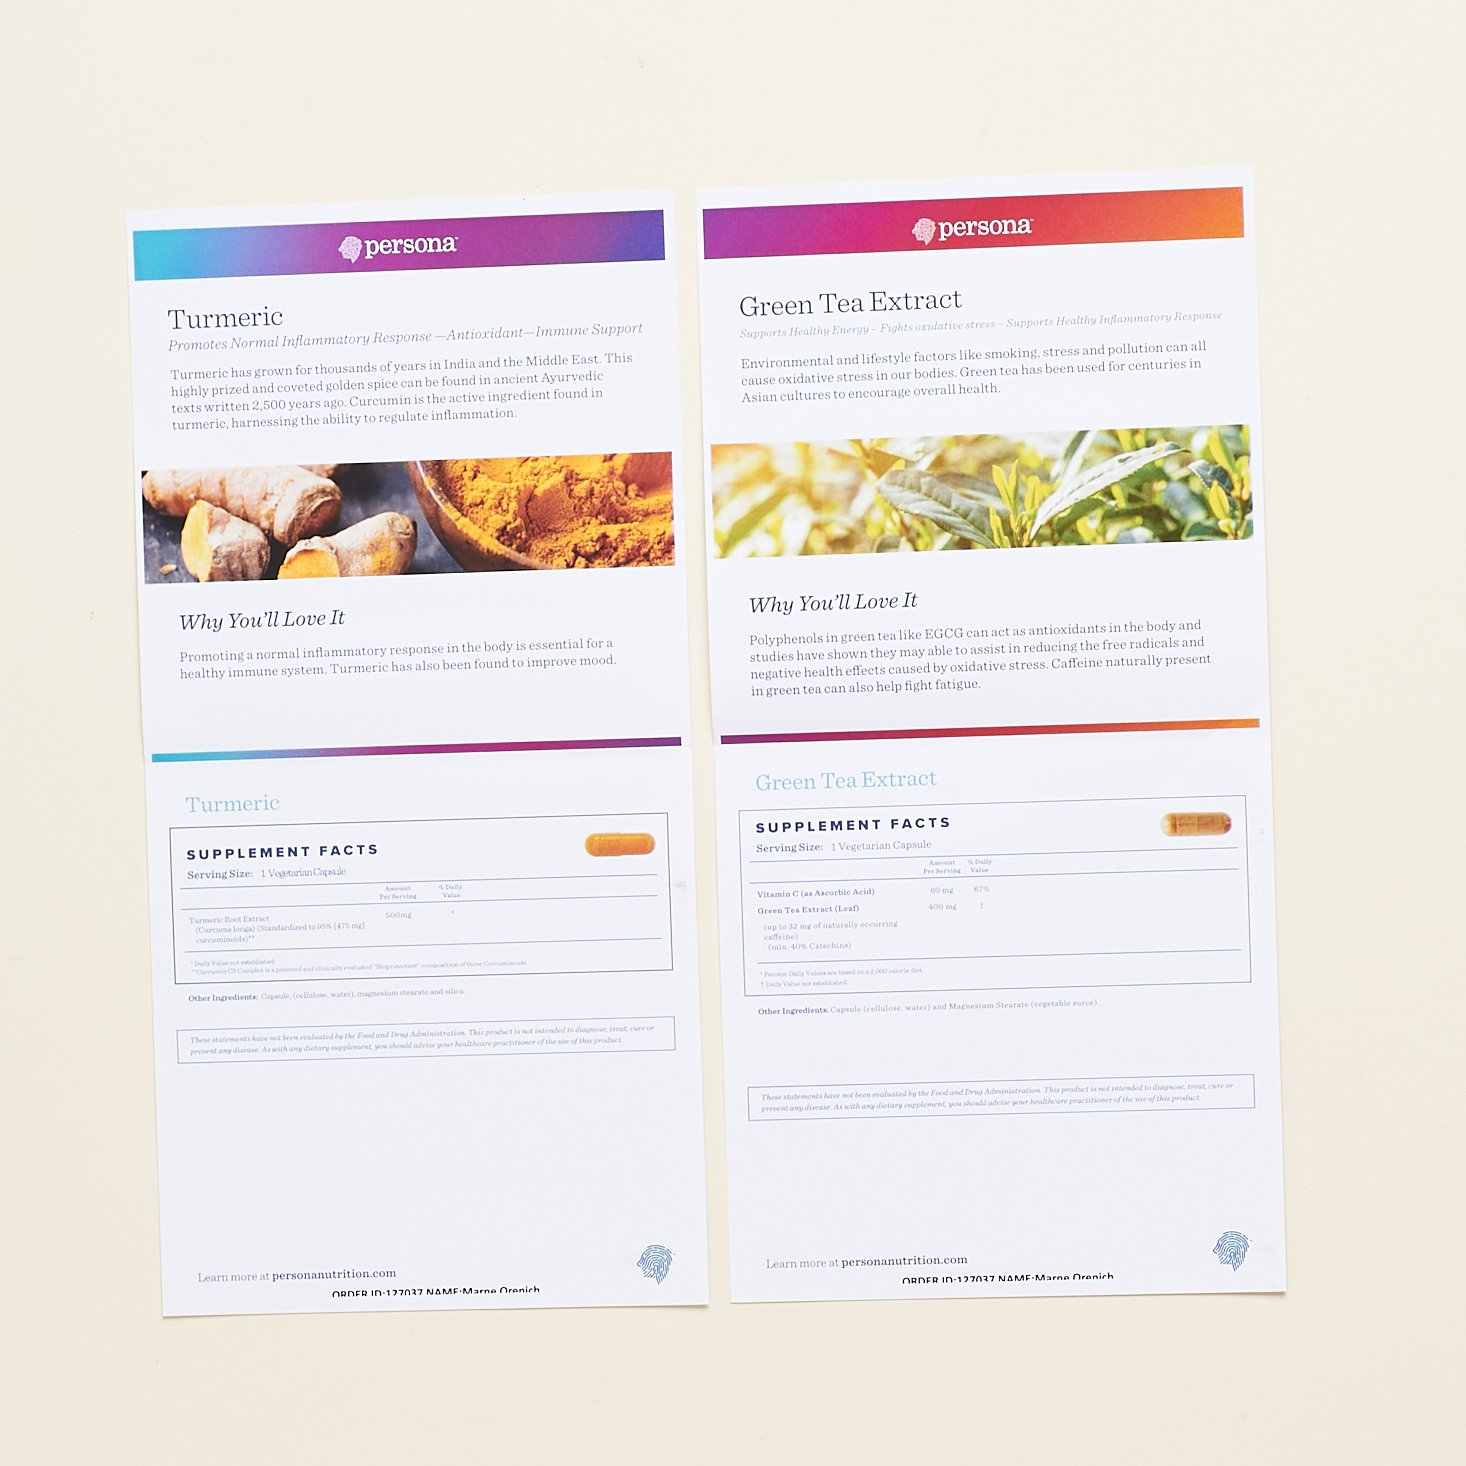 Turmeric and Green Tea Extract Info Sheets